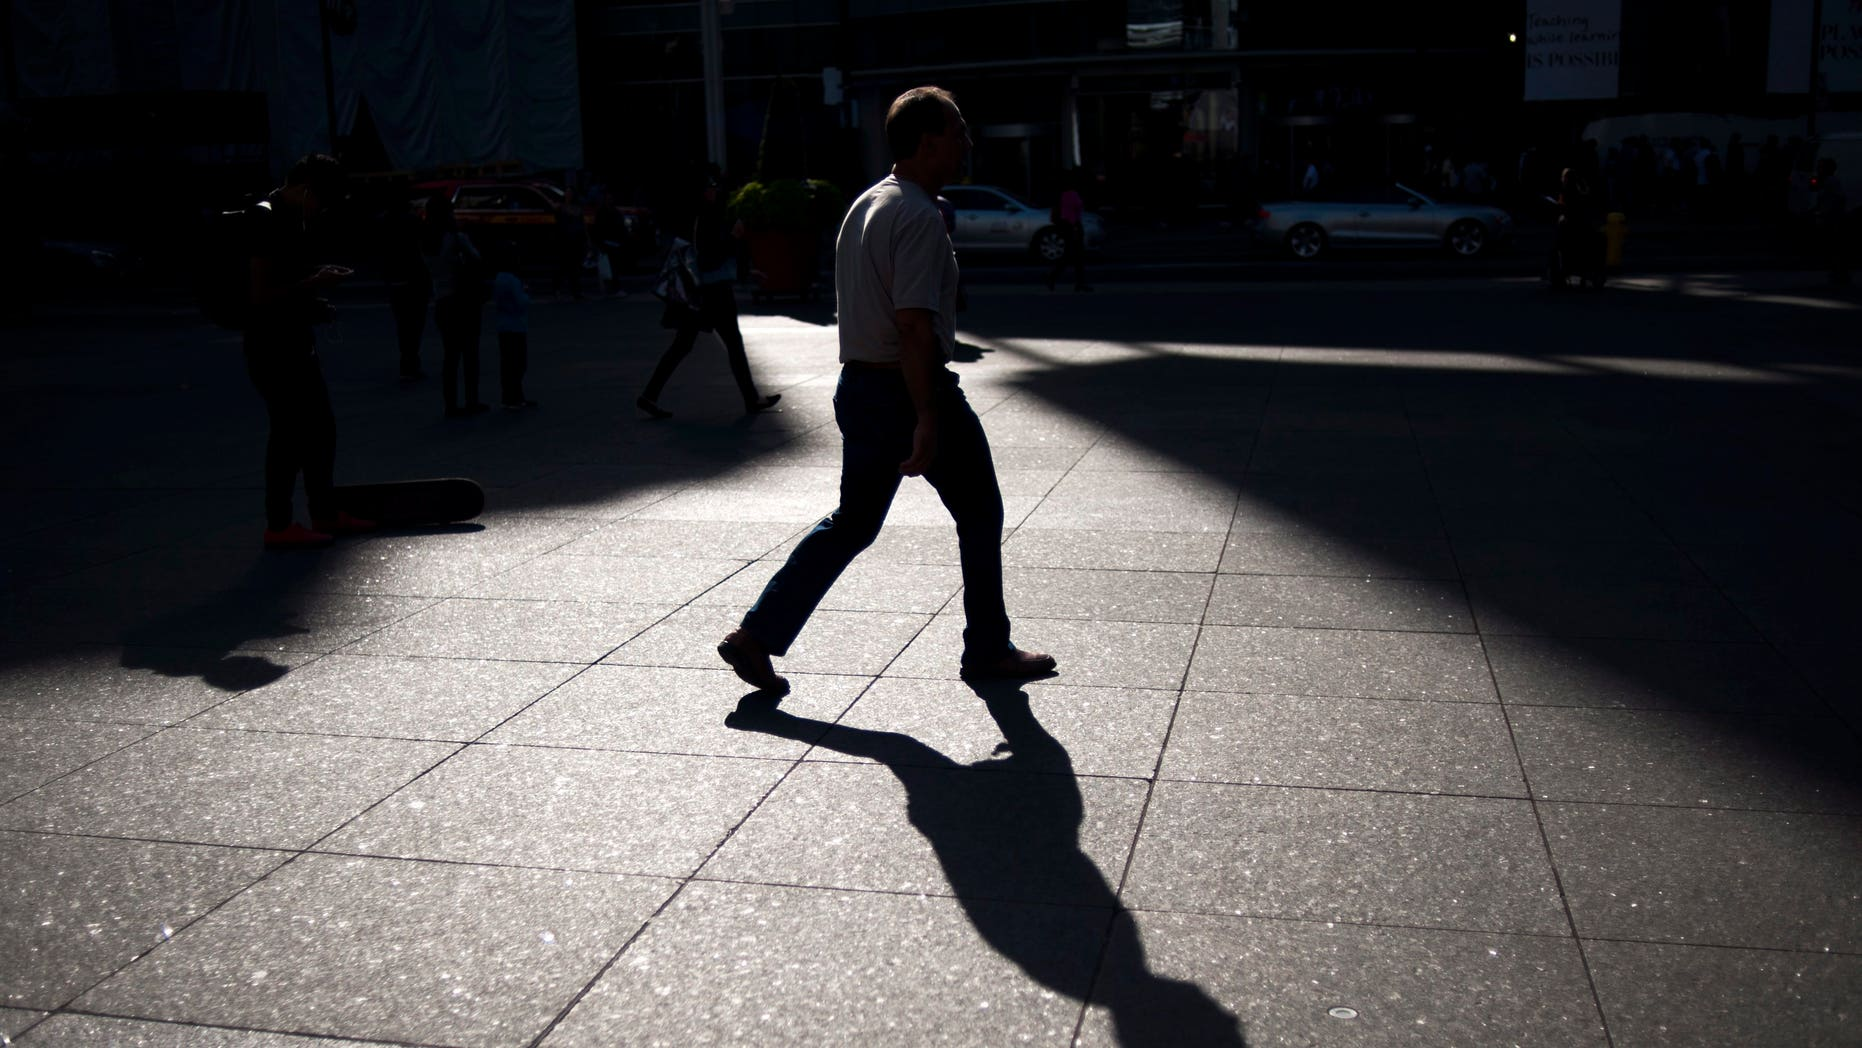 A person walks through Yonge and Dundas Square in Toronto, Friday, Sept, 25, 2015. (Marta Iwanek/The Canadian Press via AP) MANDATORY CREDIT